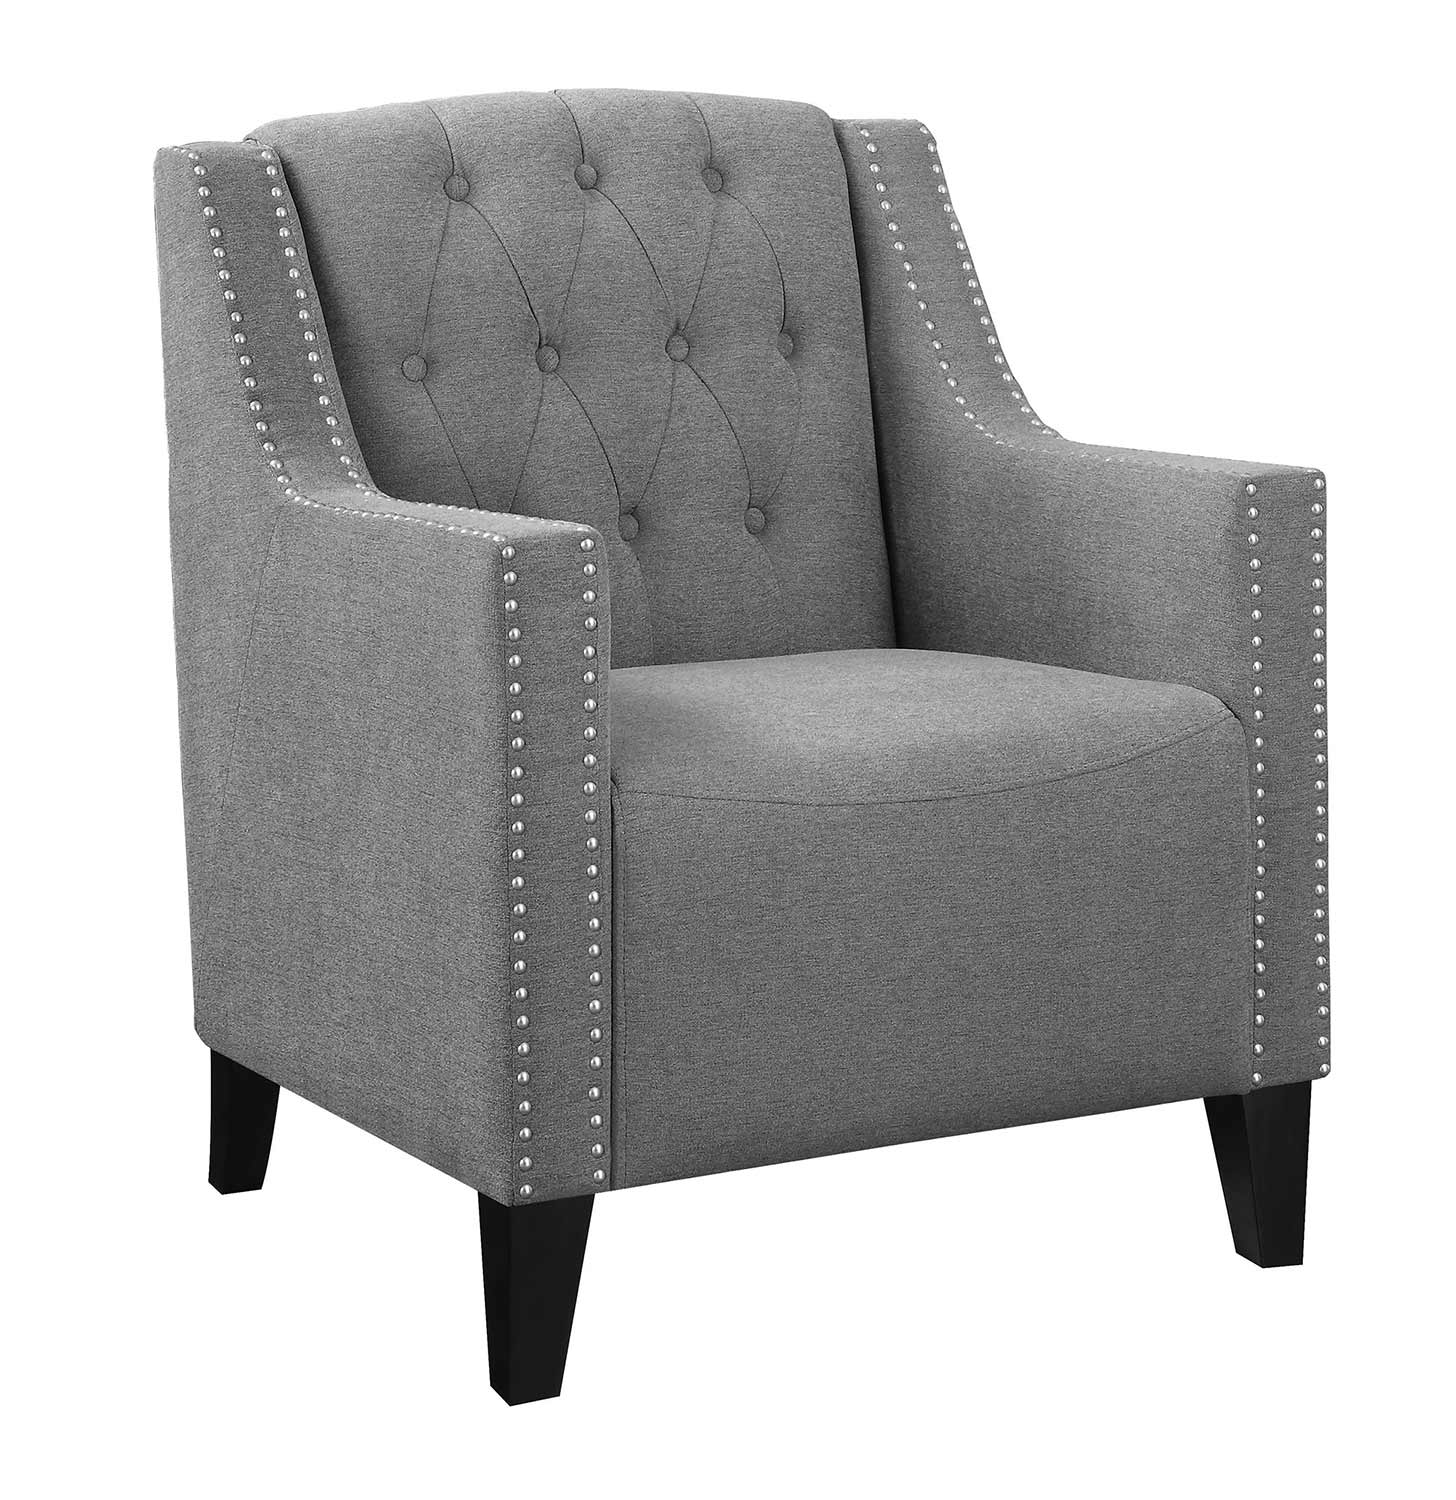 Coaster 902289 Accent Chair - Grey